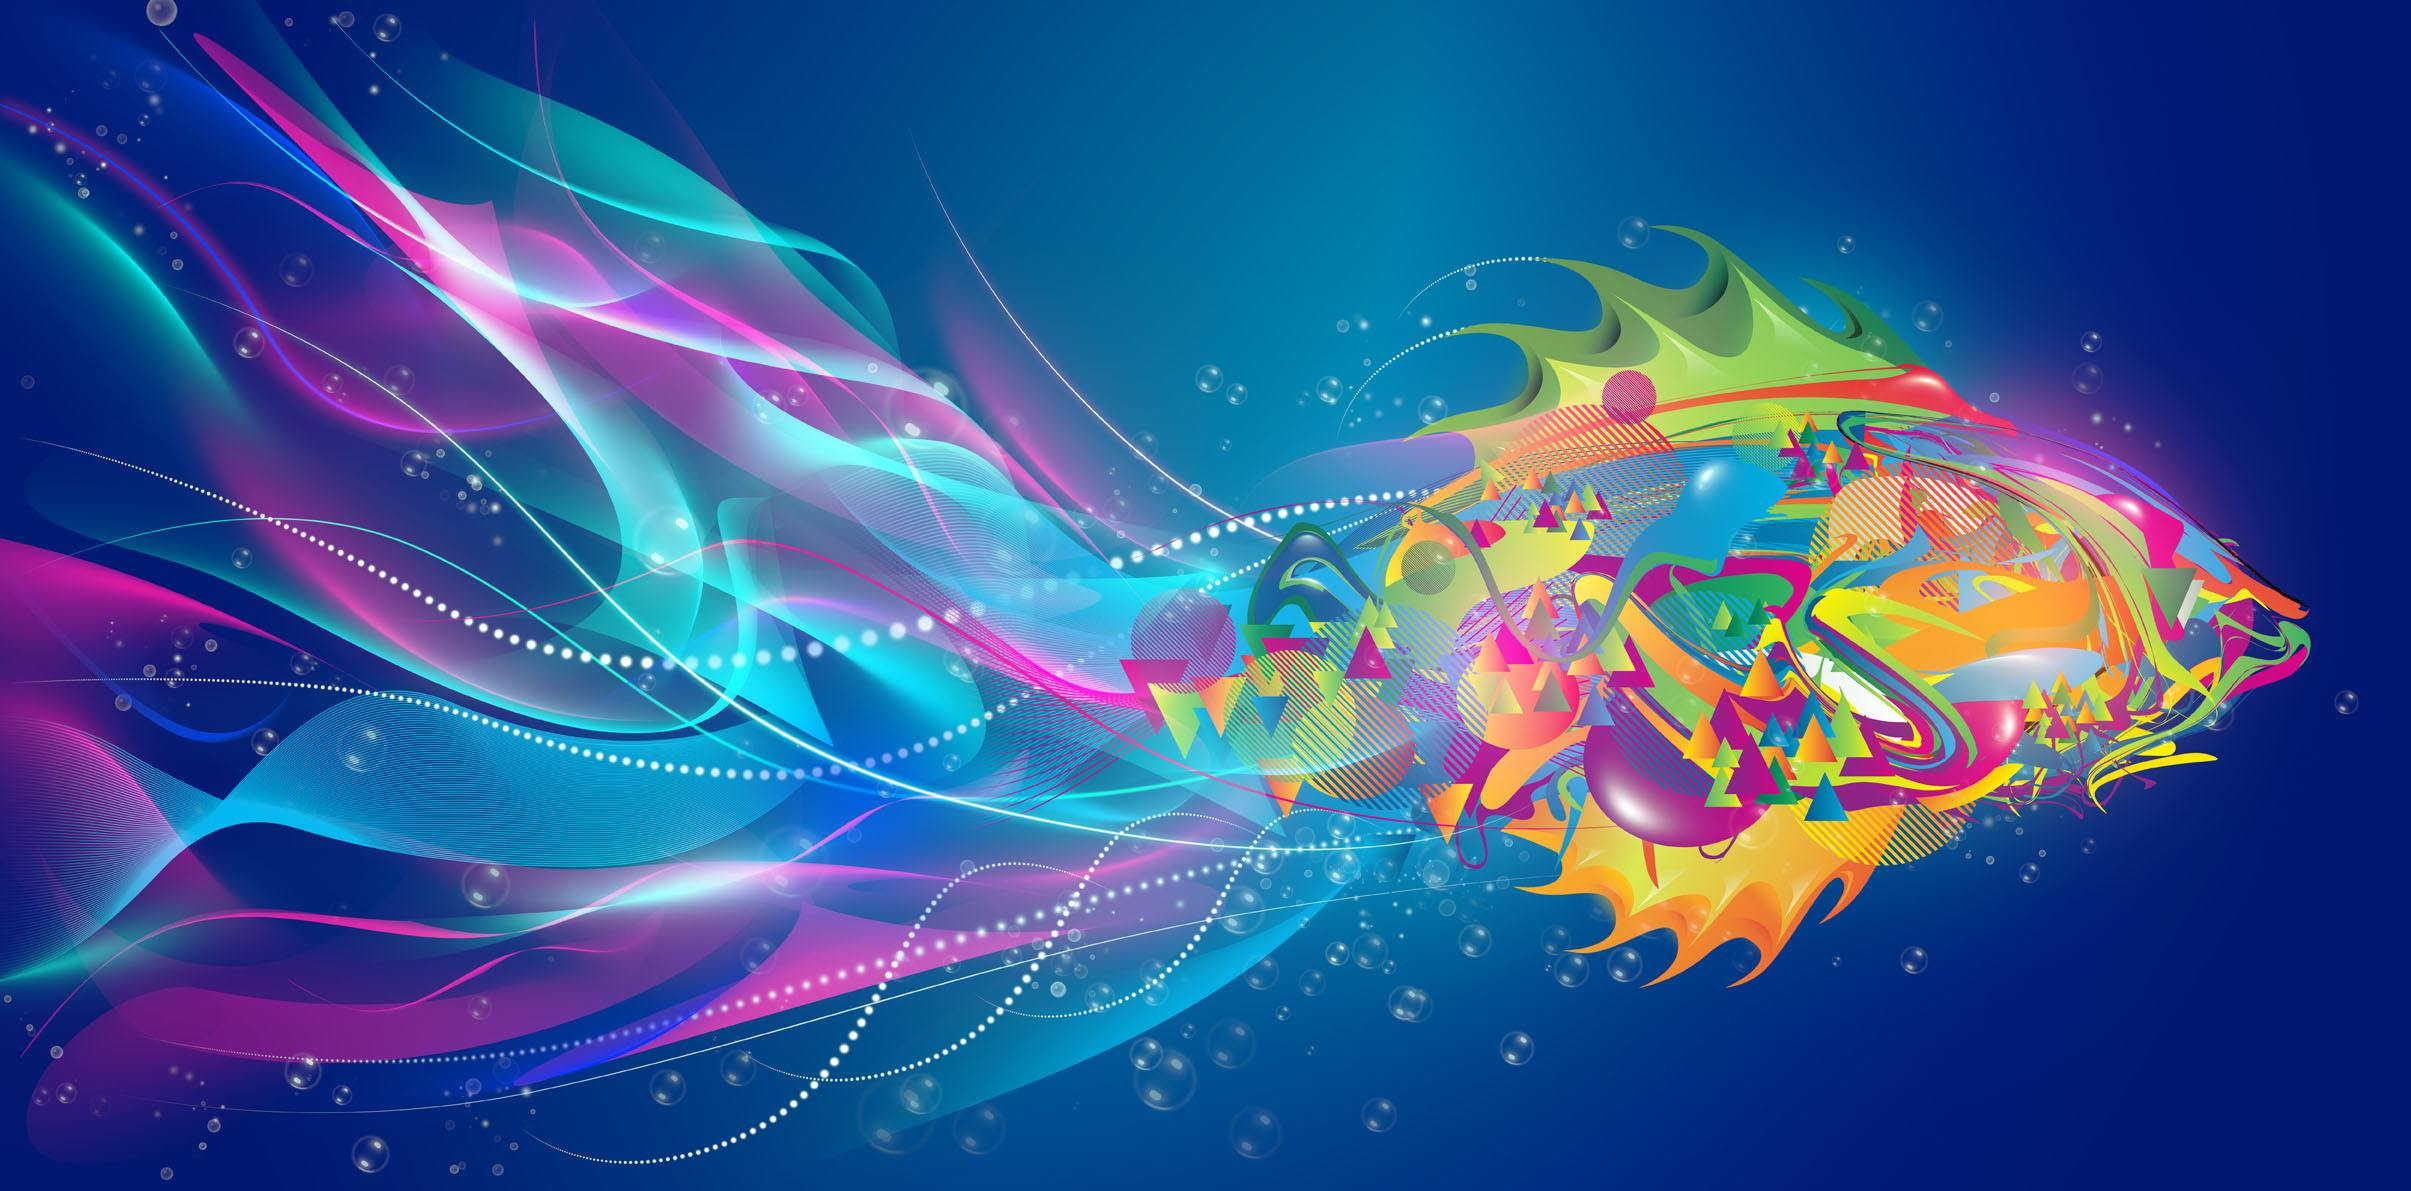 Picture Abstract Art In Hd Painting Free: Artistic Full HD Wallpaper And Background Image